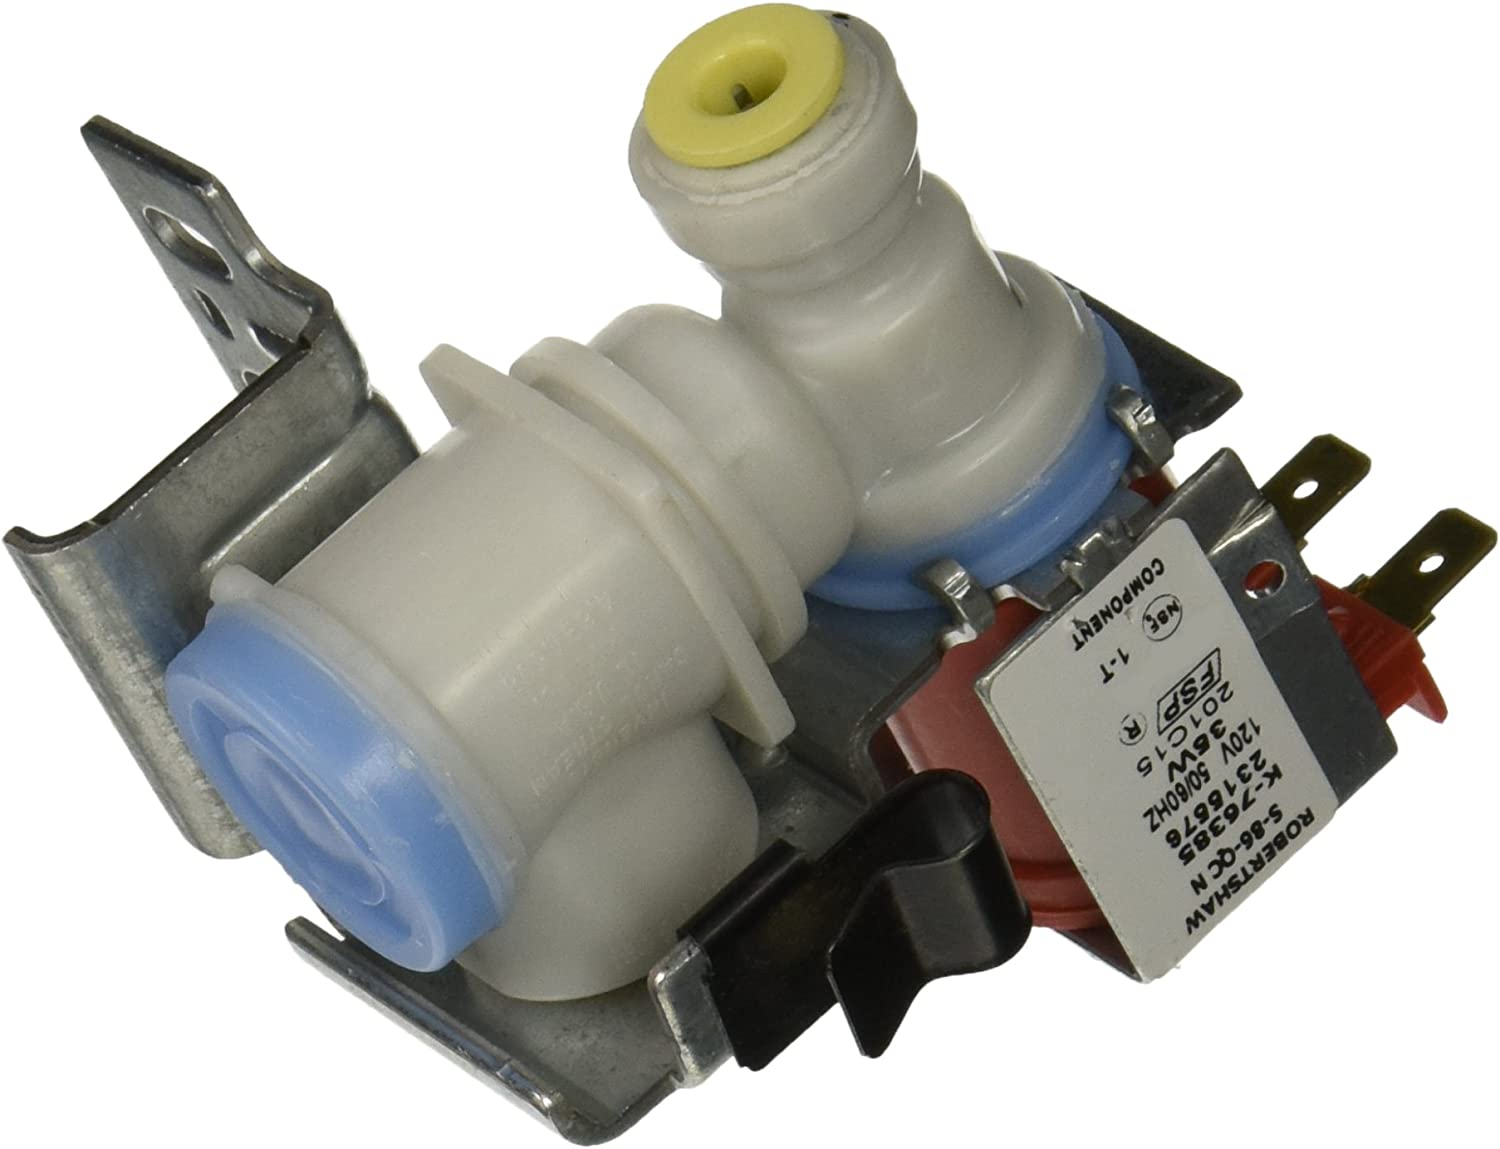 whirlpool refrigerator water valve fsp 2315576 updated part number for 2210436